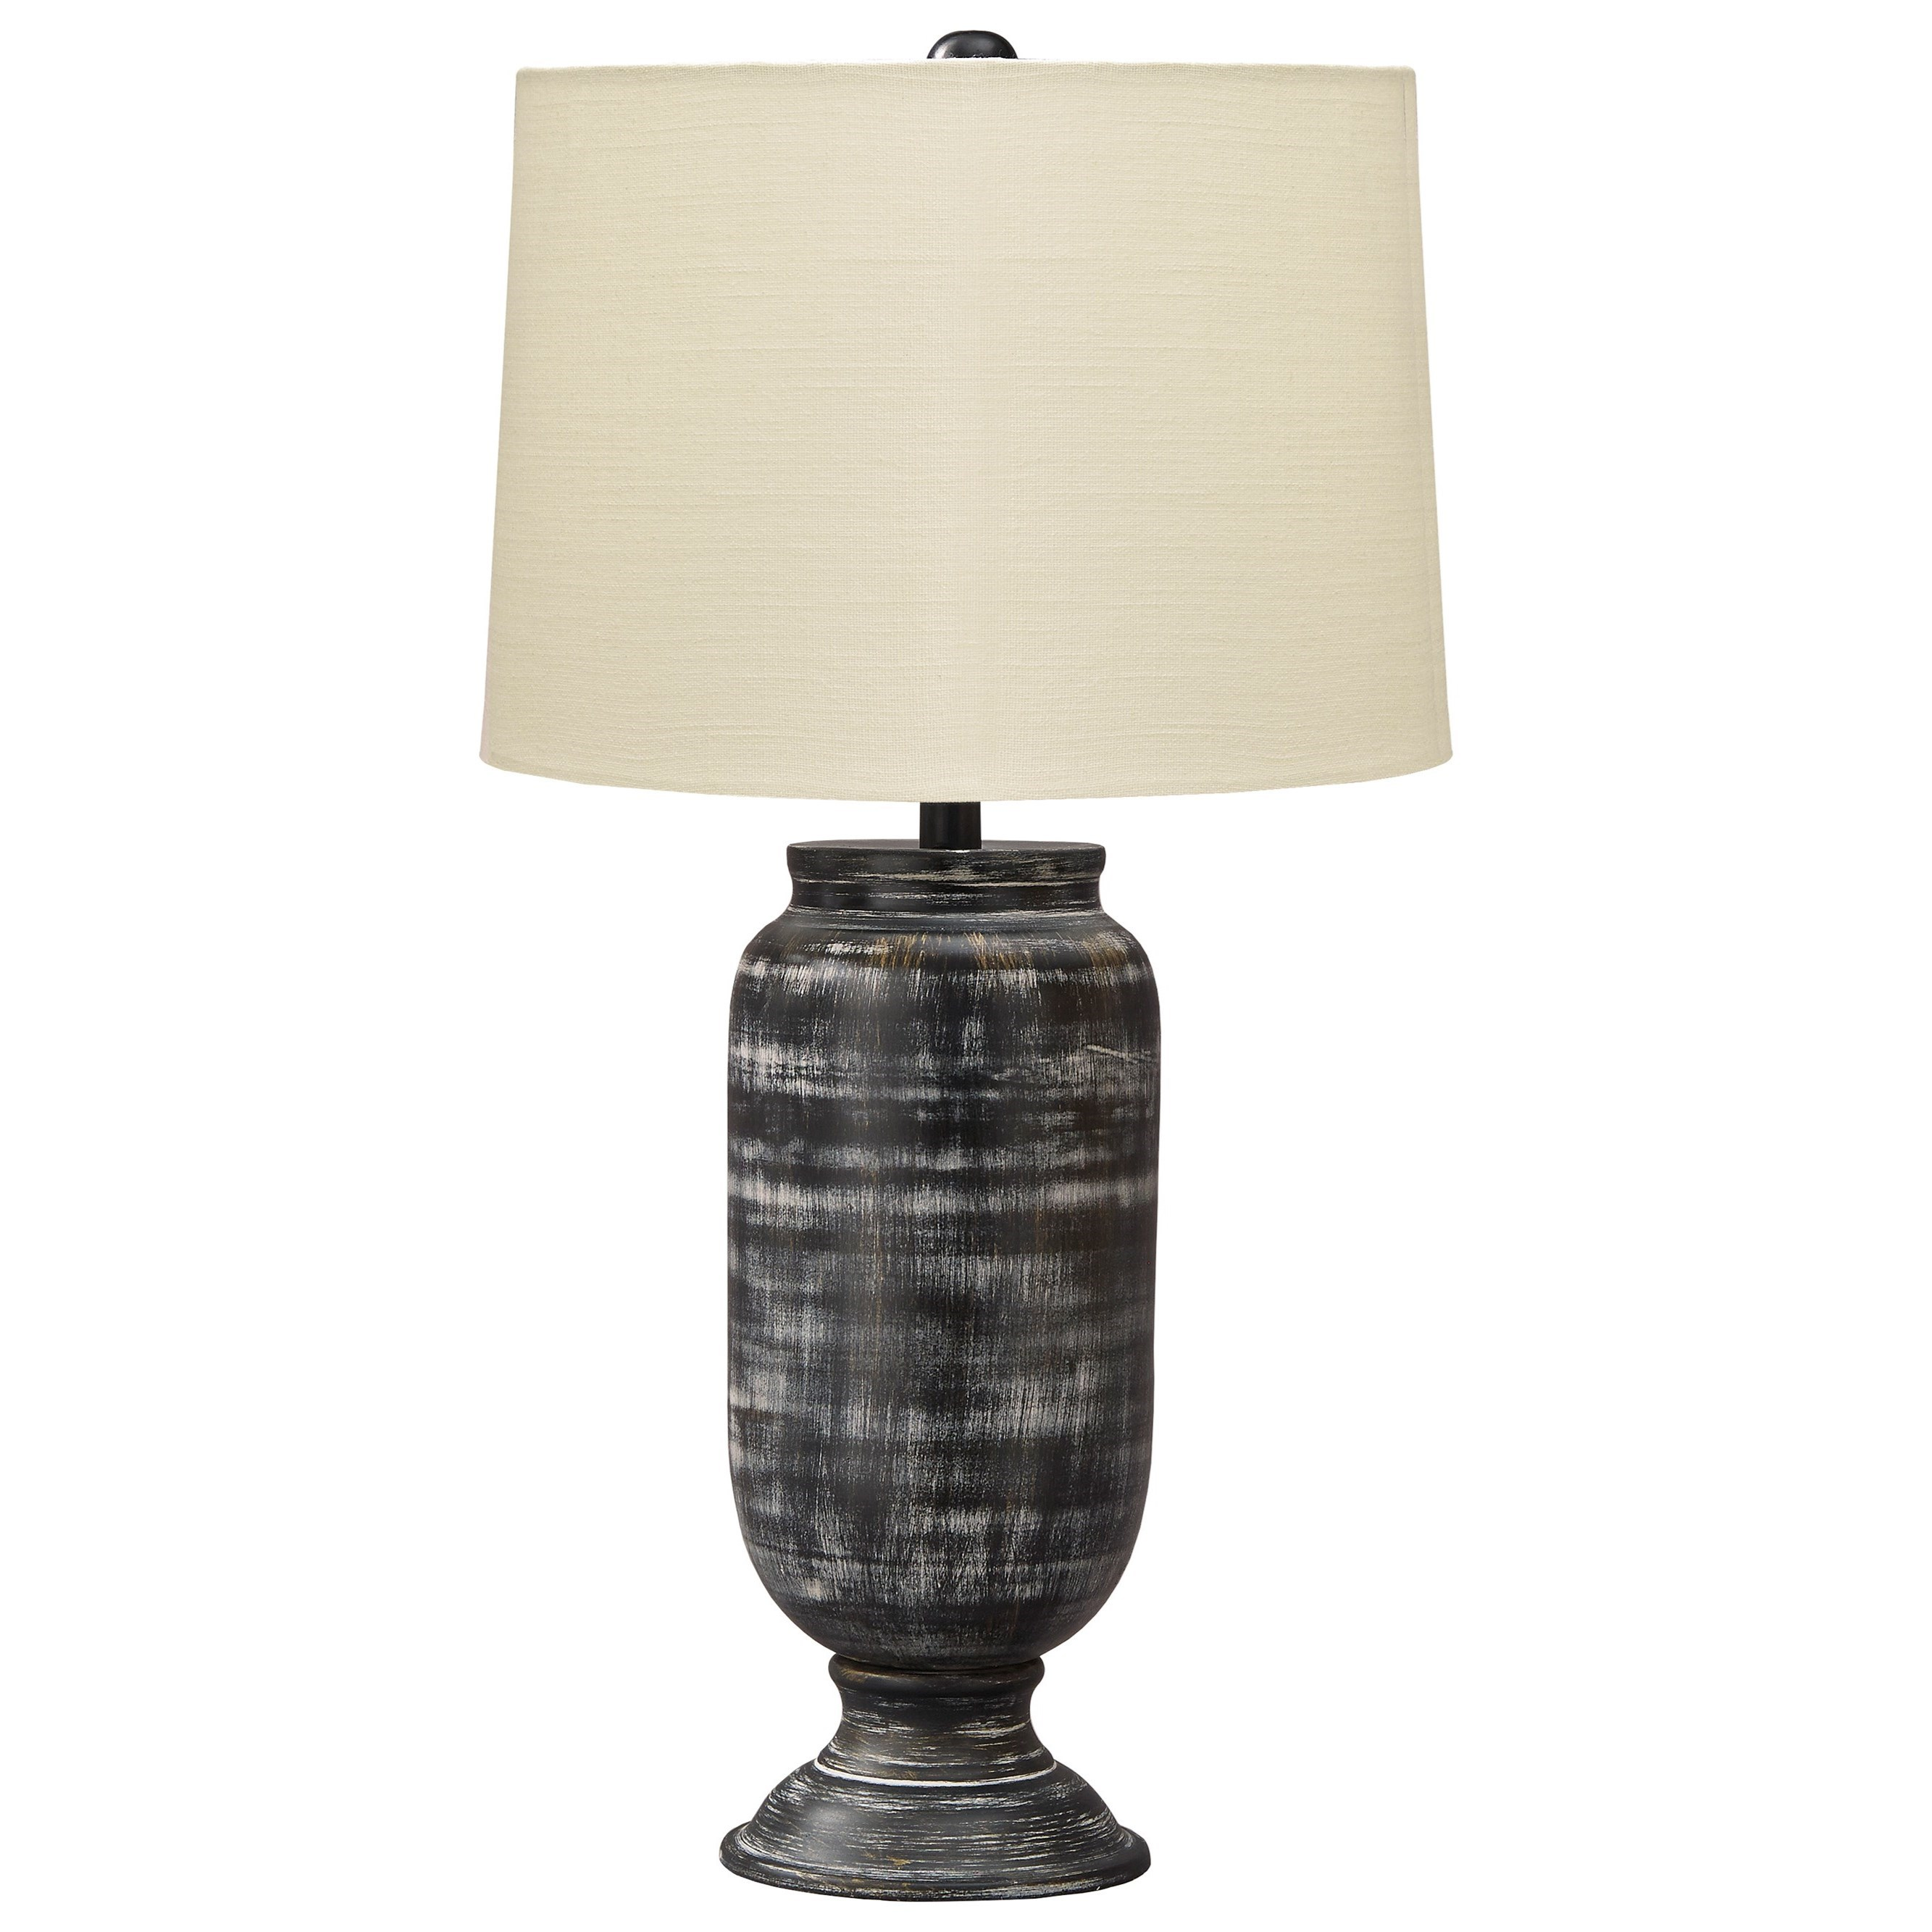 Lamps - Casual Mandelina Black Metal Table Lamp by Ashley (Signature Design) at Johnny Janosik